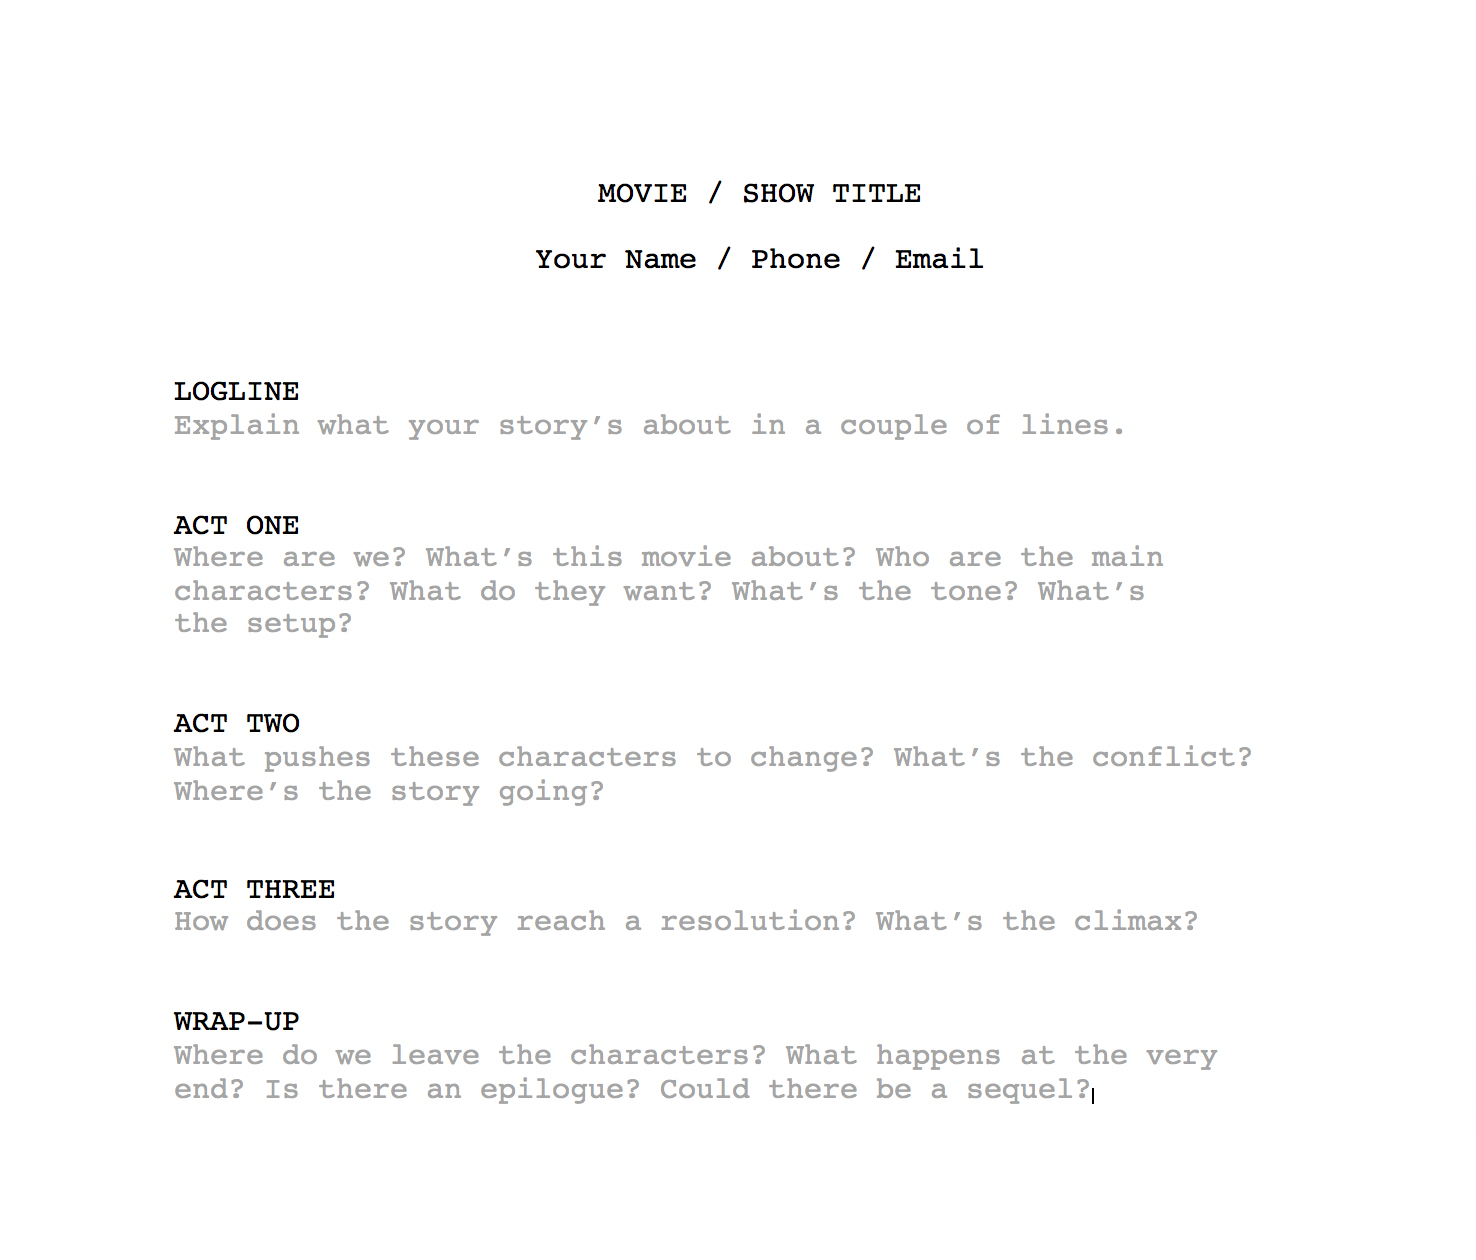 Screenplay Script Template from images.ctfassets.net